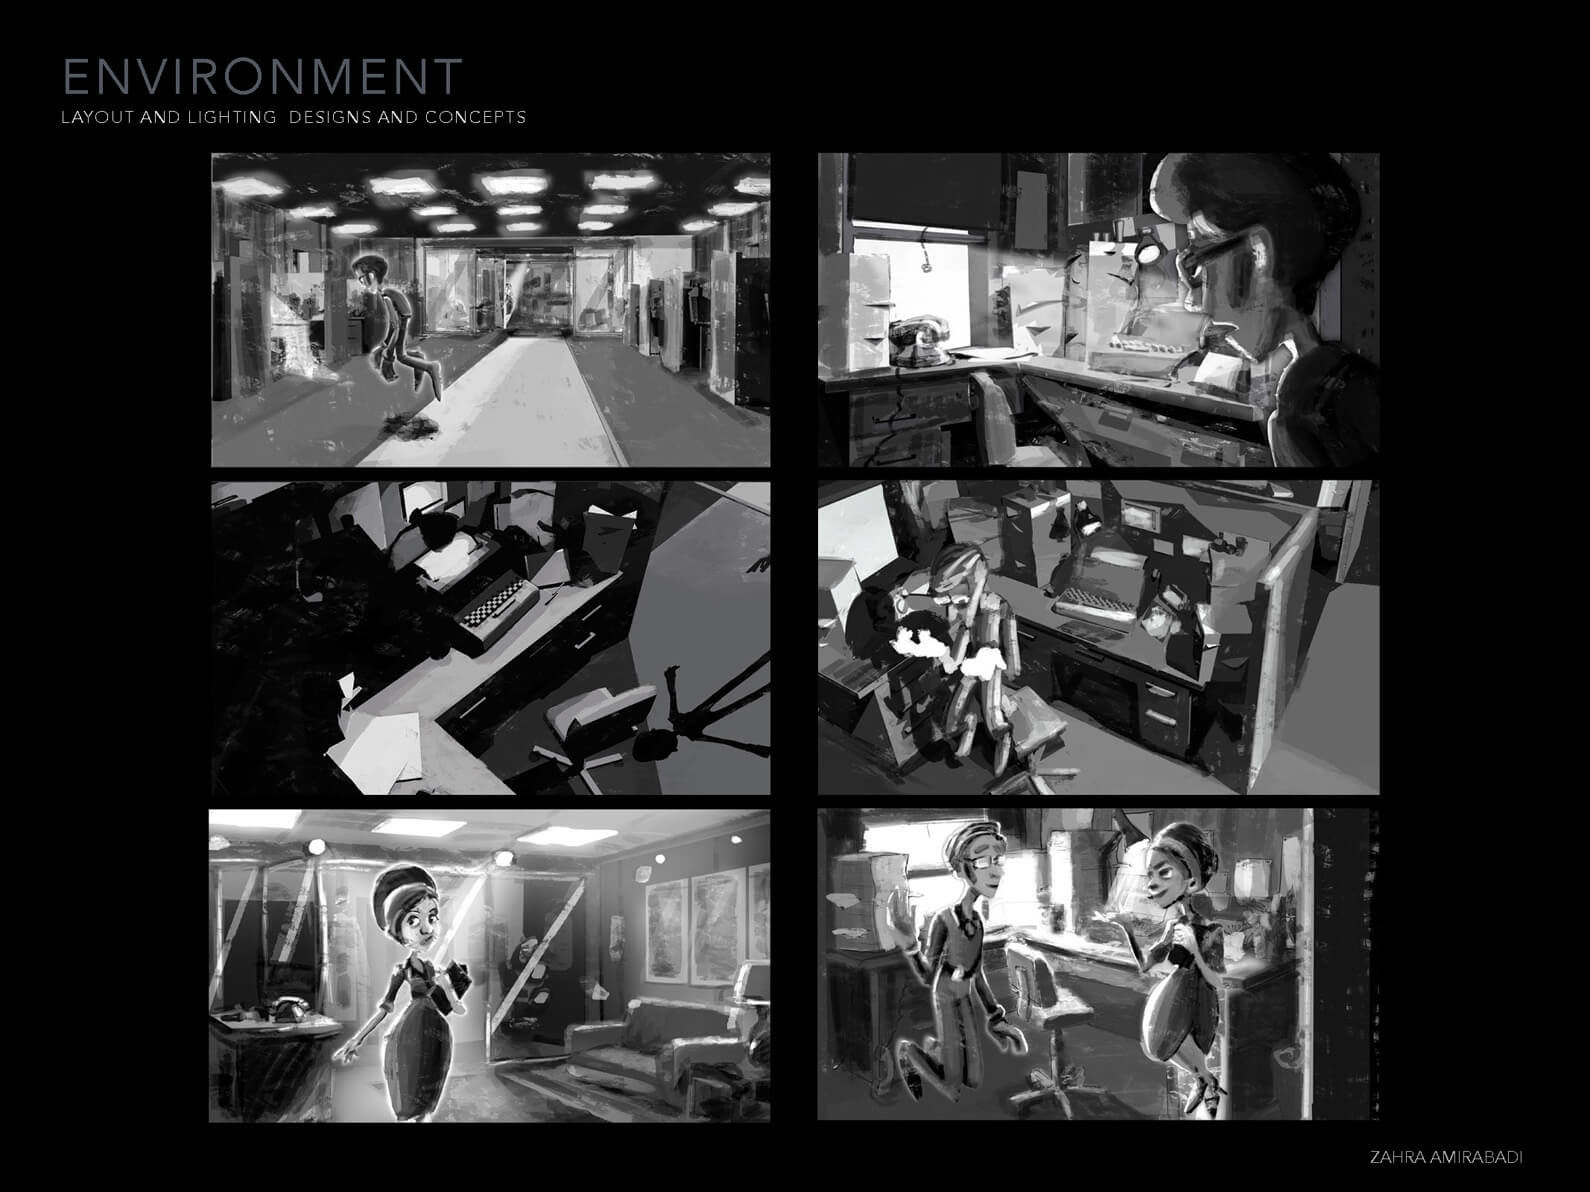 Layout and lighting design for Orientation Center for the Unseen depicting various still scenes in black and white